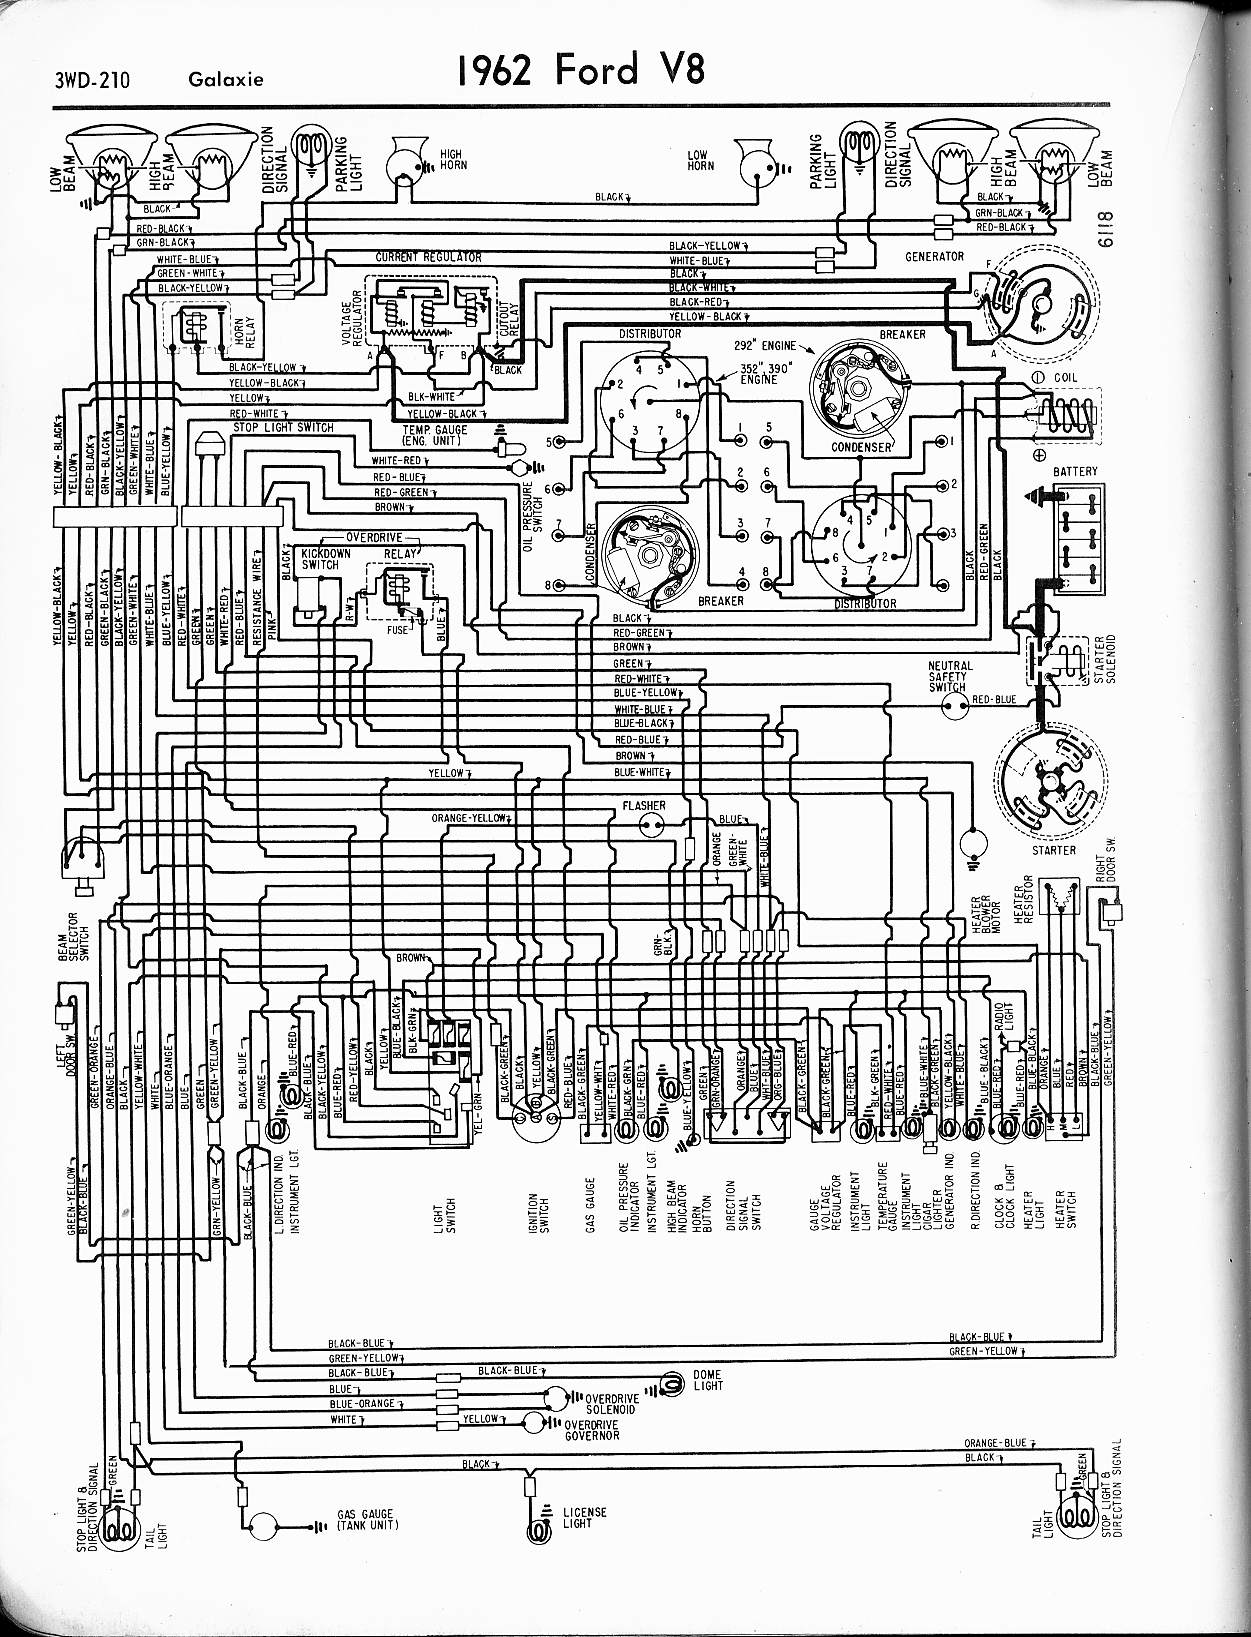 MWire5765 210 1964 thunderbird wiring diagram 1964 thunderbird stereo wiring  at reclaimingppi.co